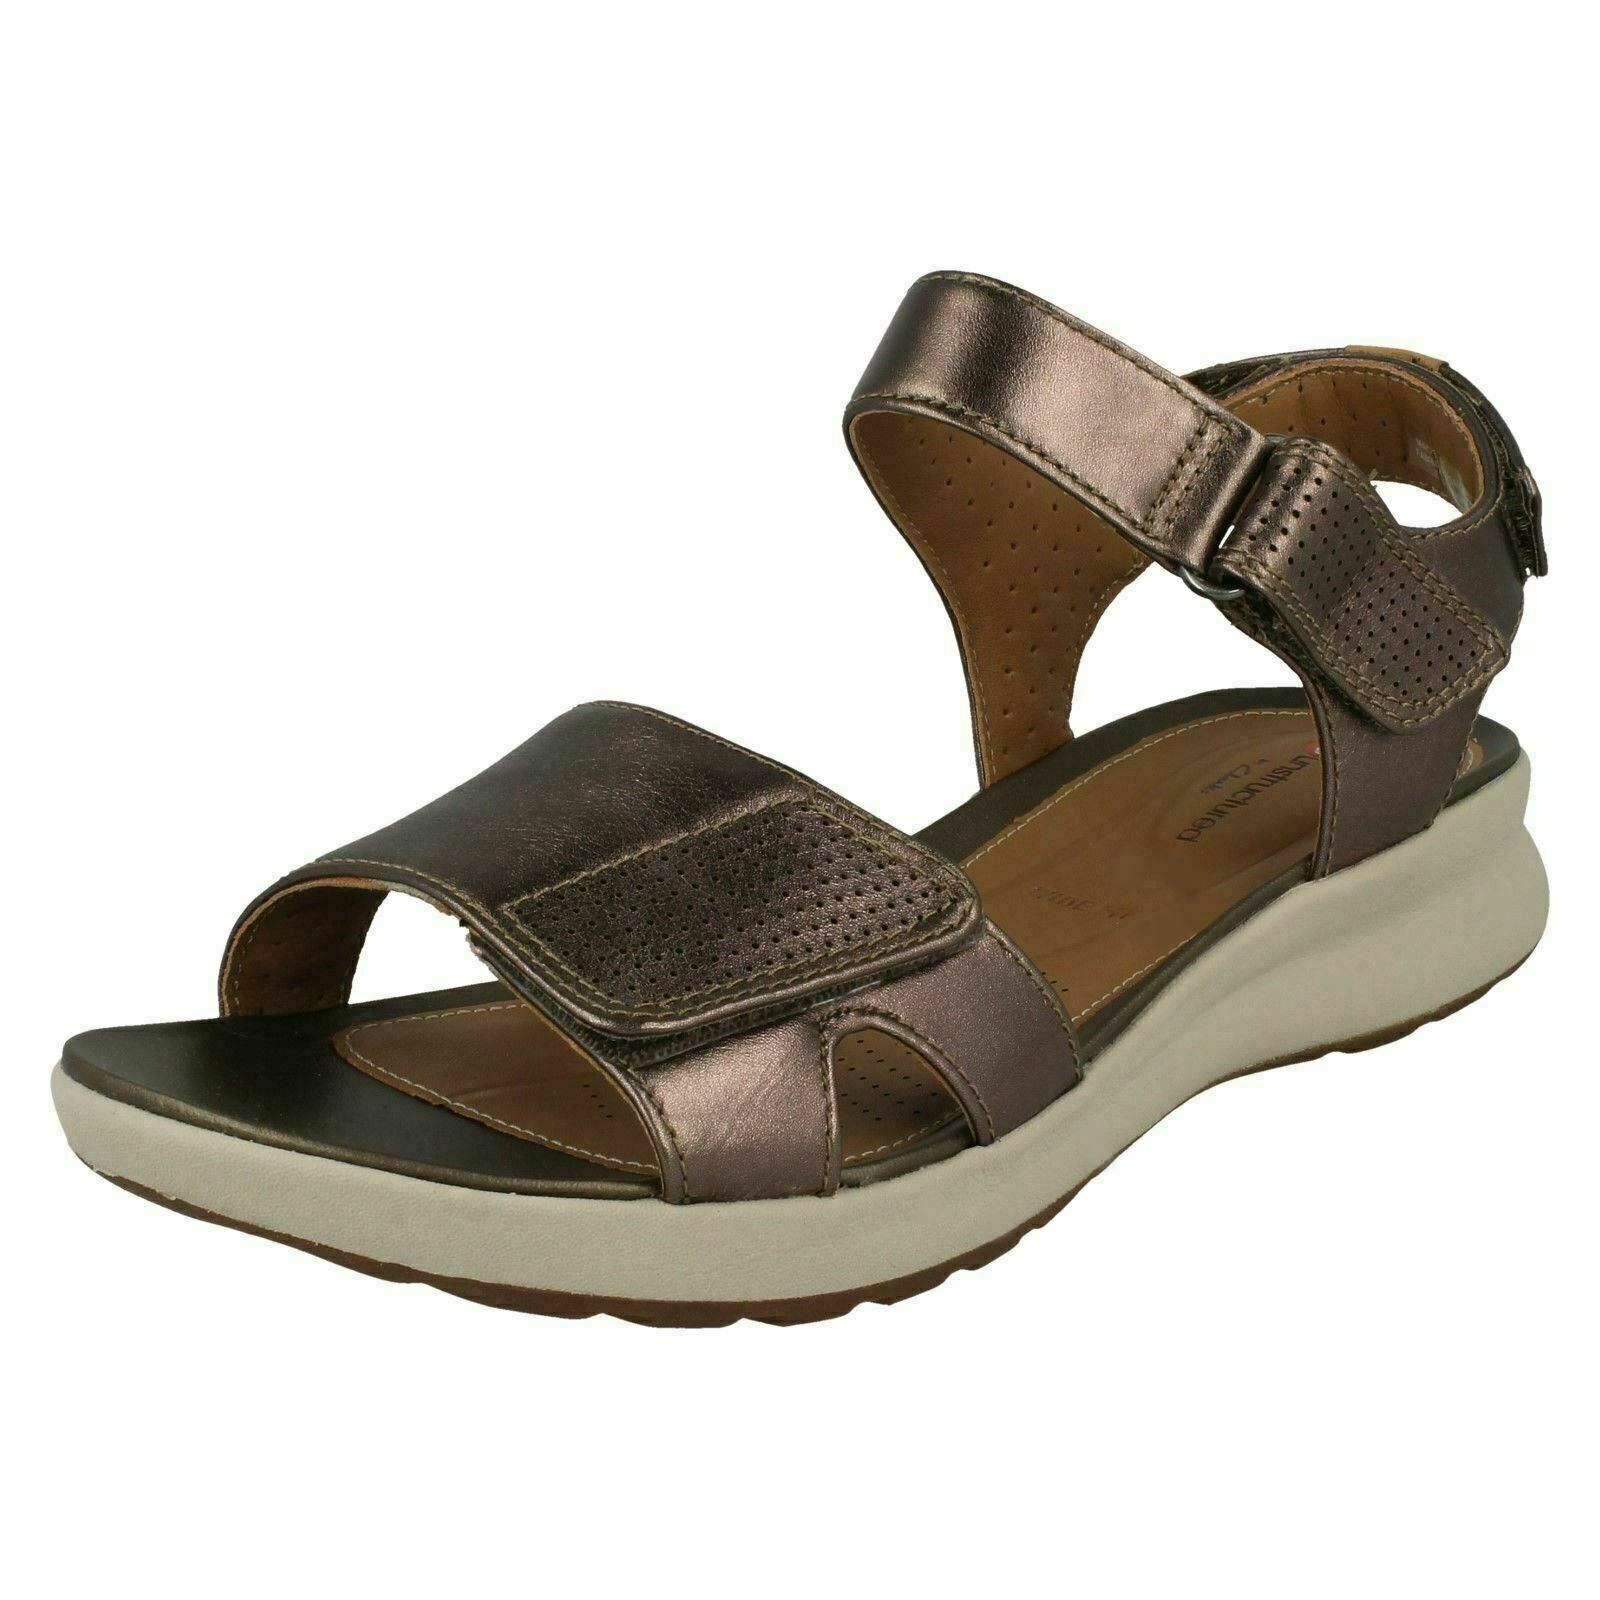 Ladies Clarks Un Adorn Calm Pebble Metallic Leather Casual Sandals - E Fitting